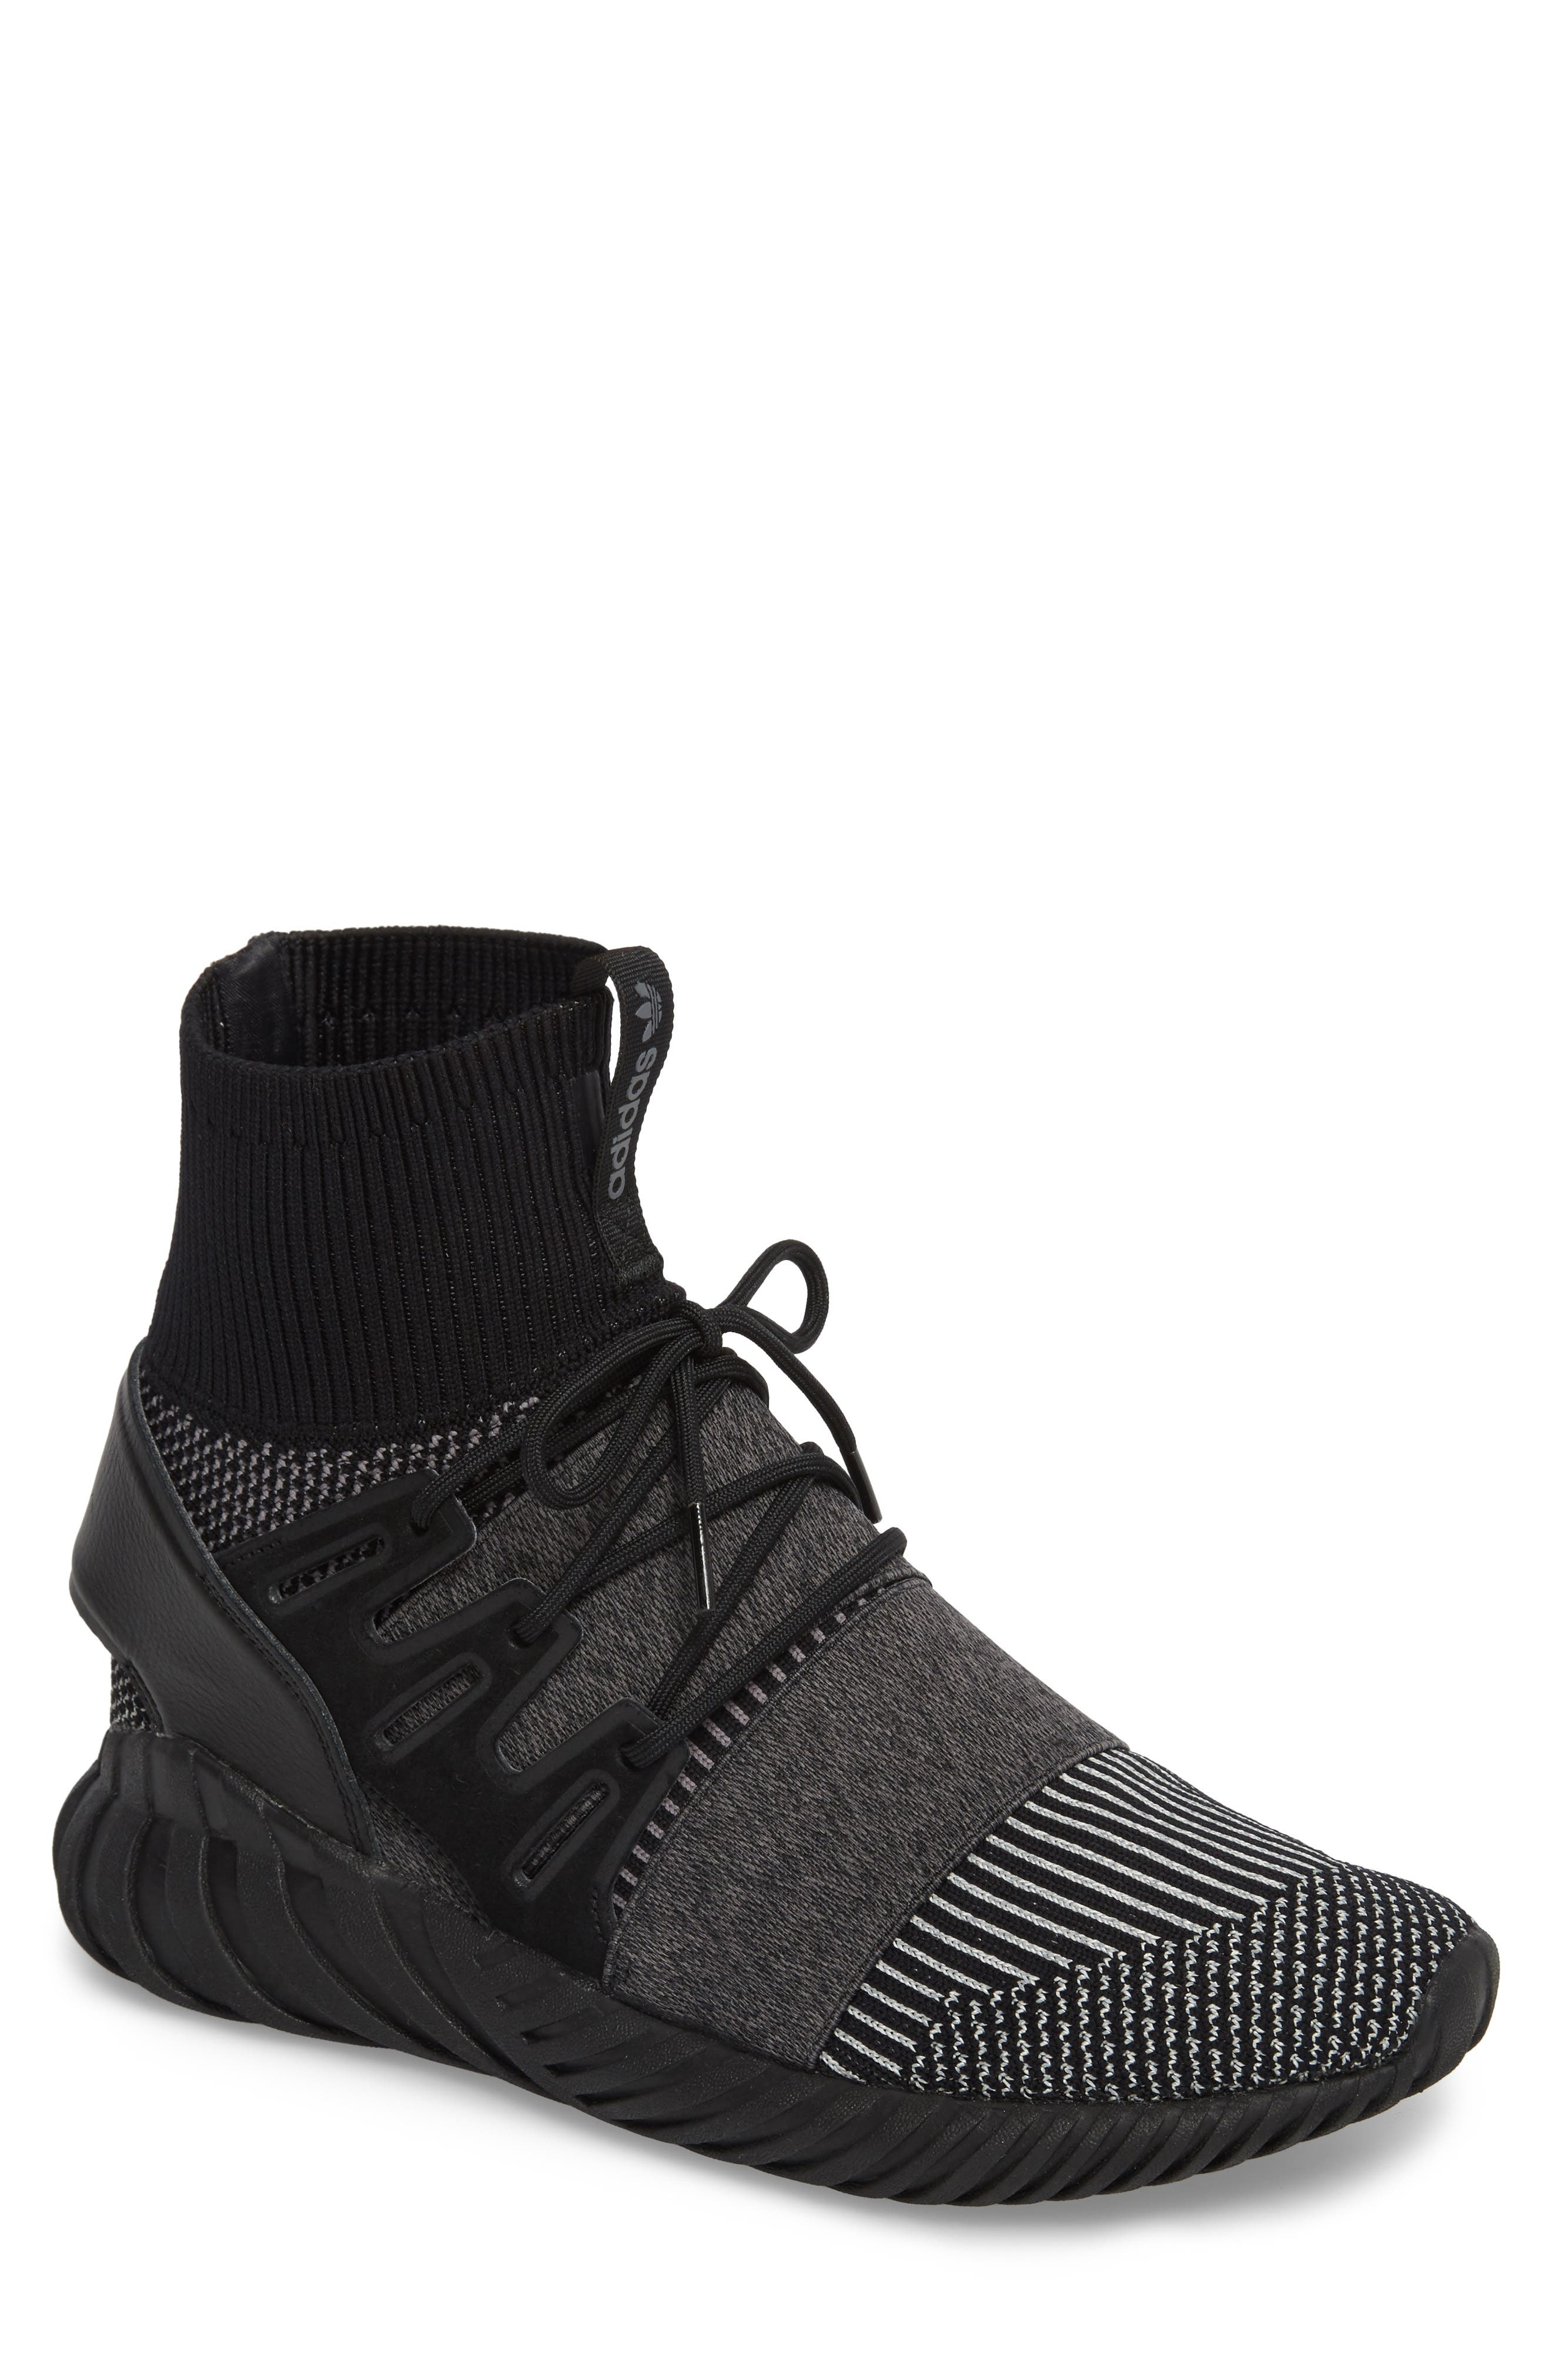 Tubular Doom Primeknit Sneaker,                             Main thumbnail 1, color,                             006